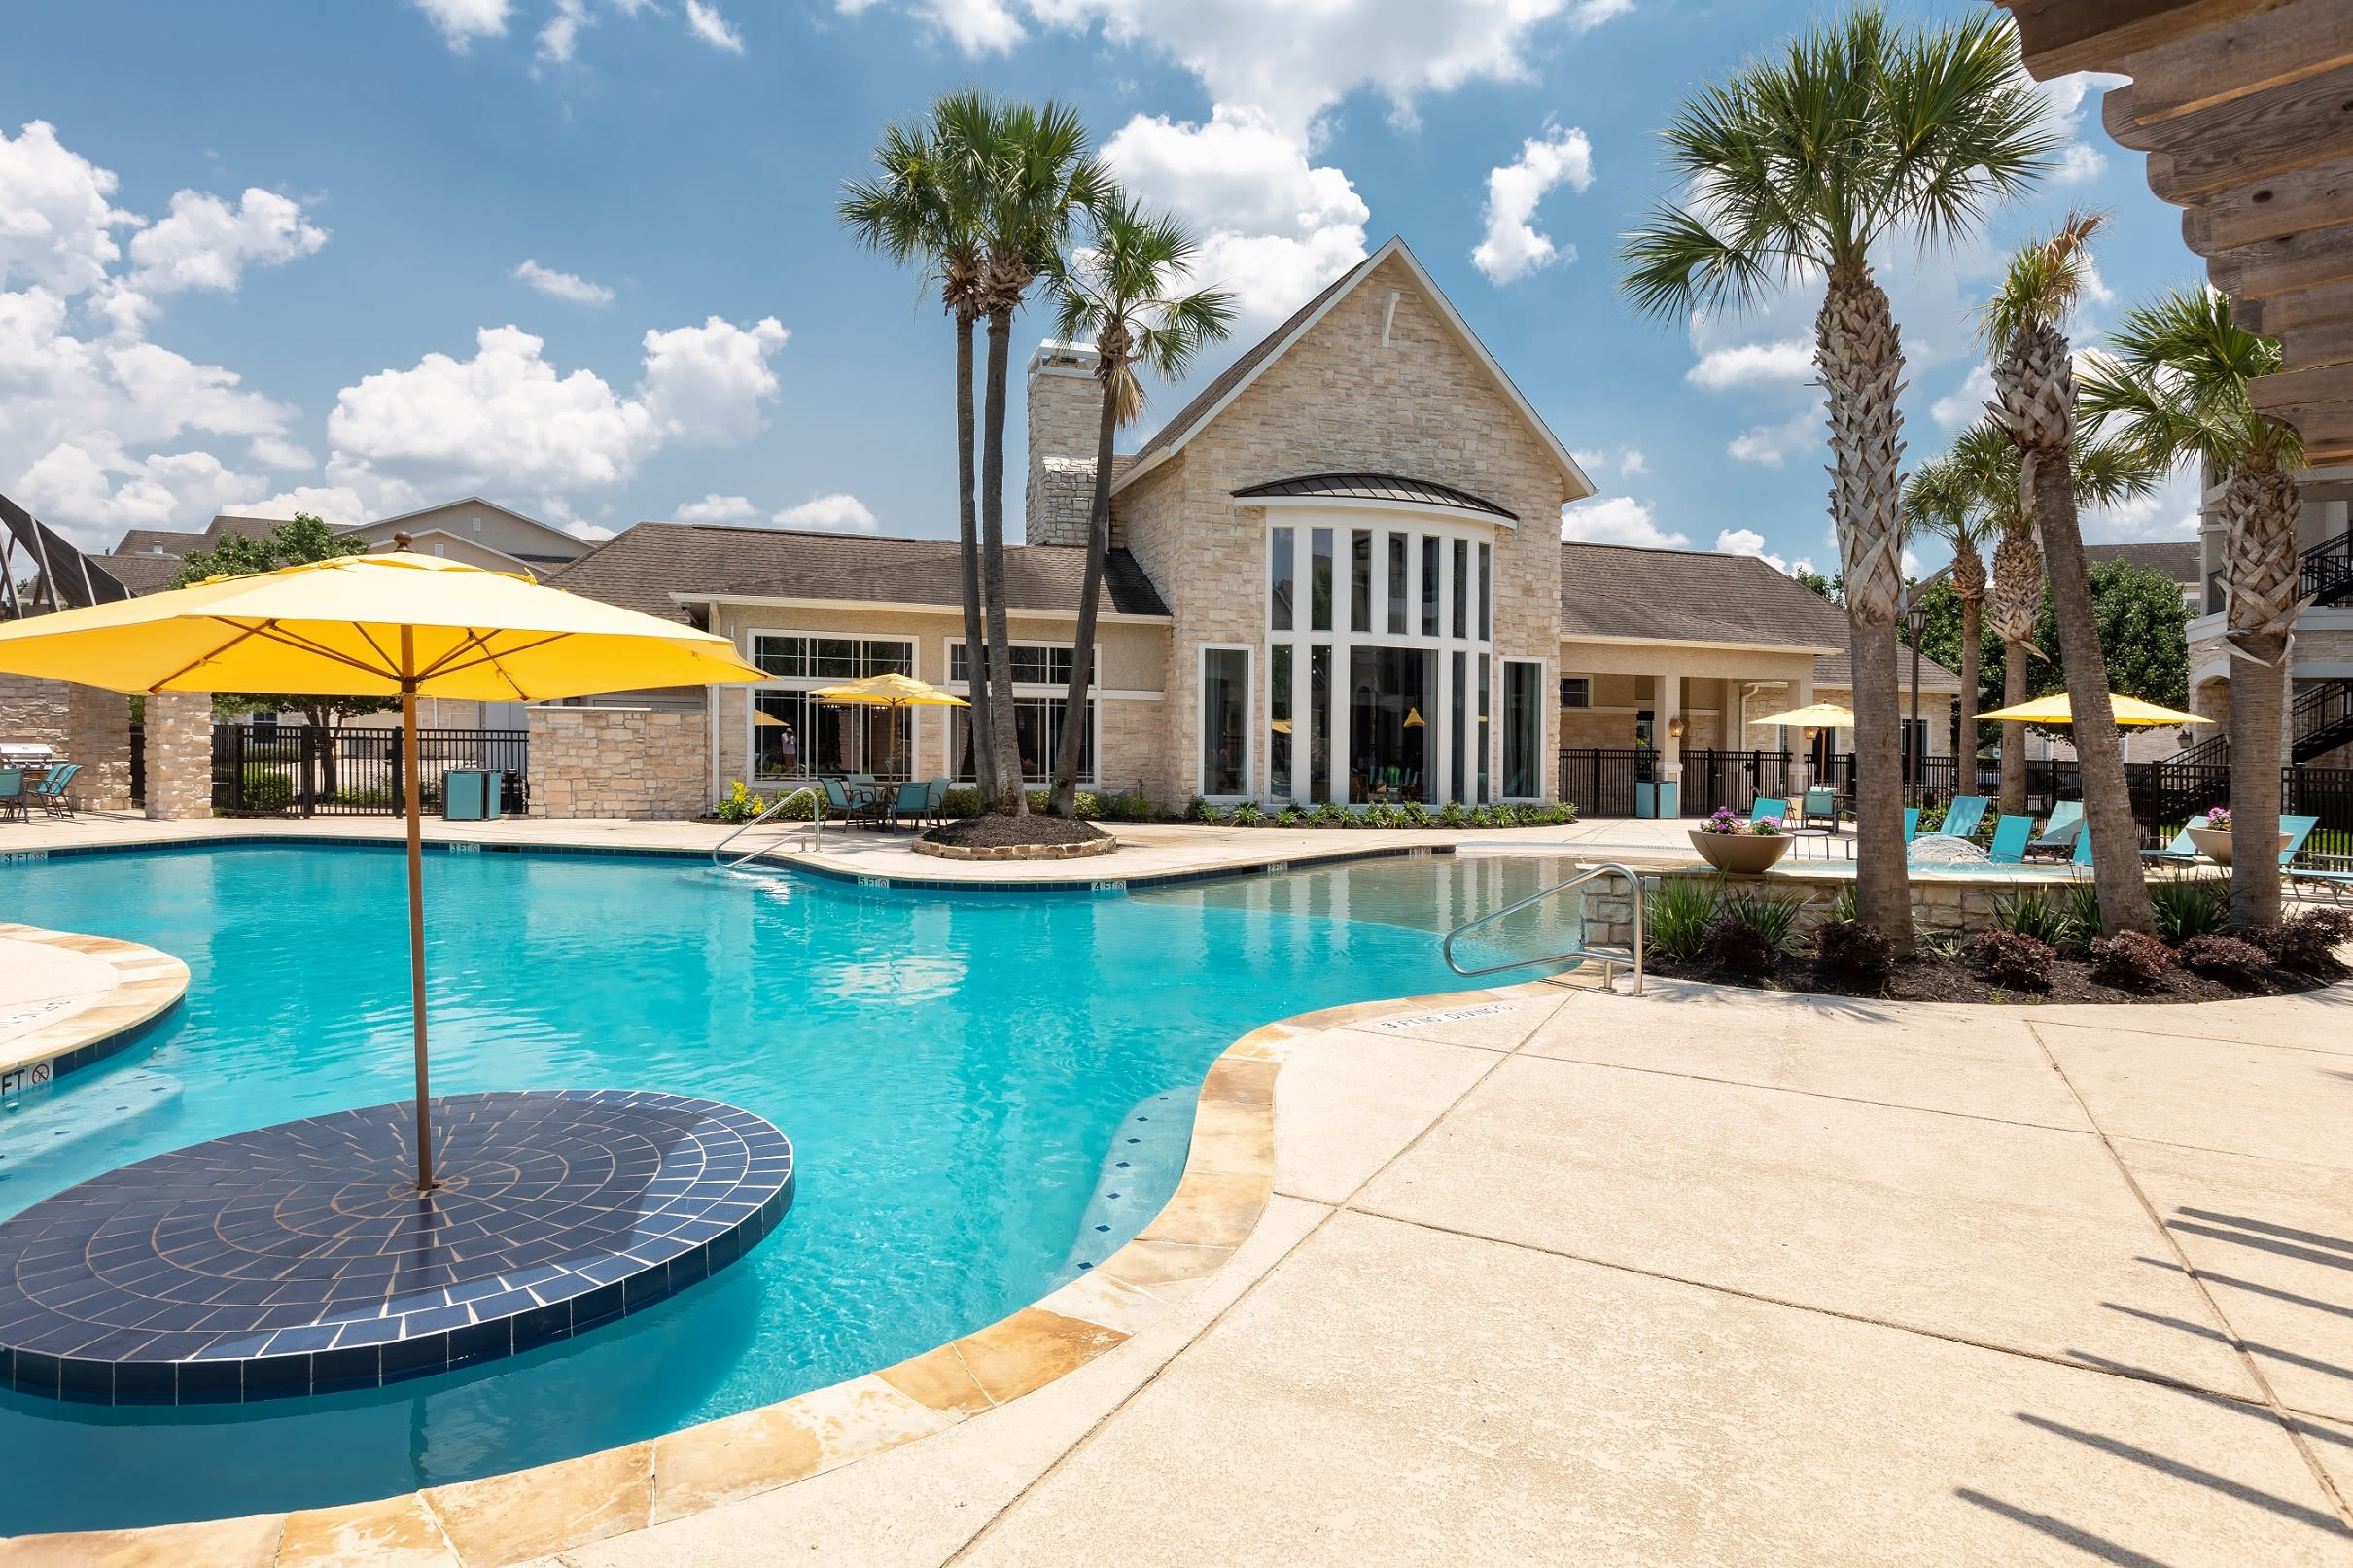 Resort style pool with lounge chairs at The Retreat at Cinco Ranch in Katy, Texas